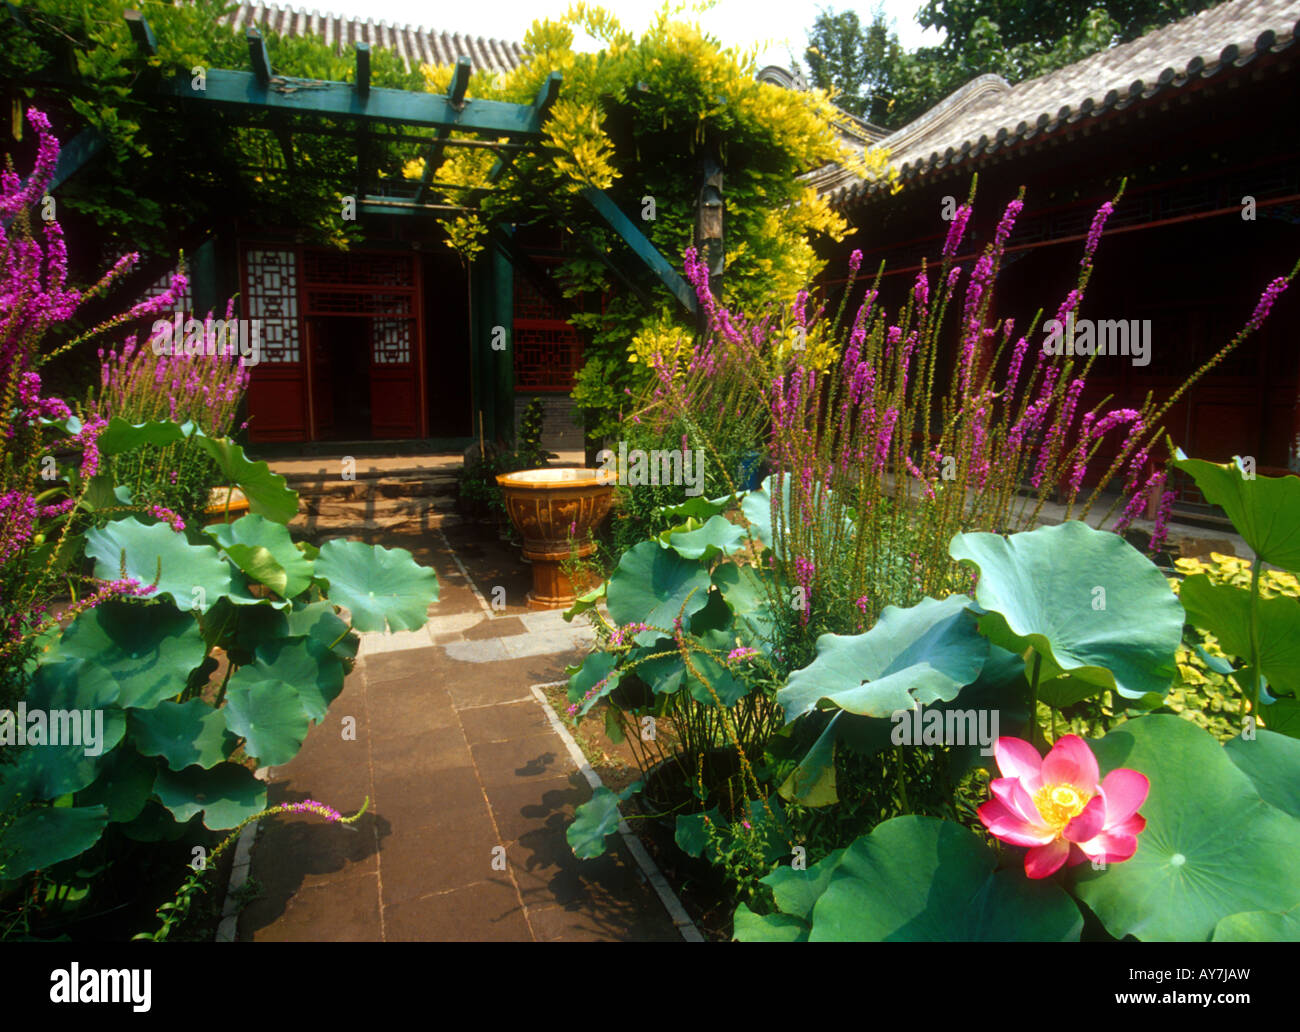 Garden of Prince Gong's Mansion in Beijing hutong, inspired Dream of Red Mansions novel - Stock Image